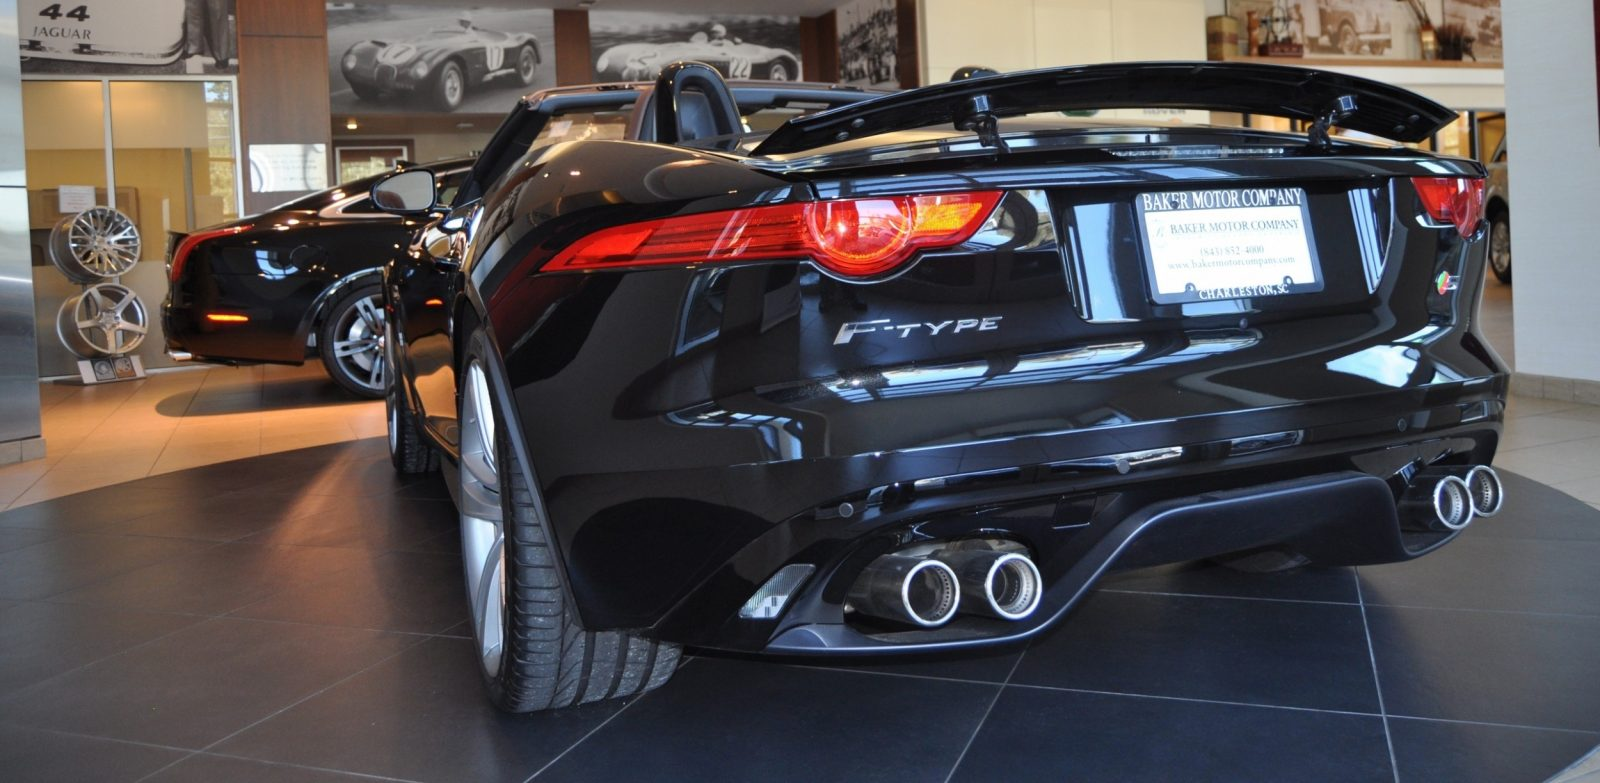 2014 Jaguar F-type S Cabrio - LED Lighting Demo and 60 High-Res Photos14